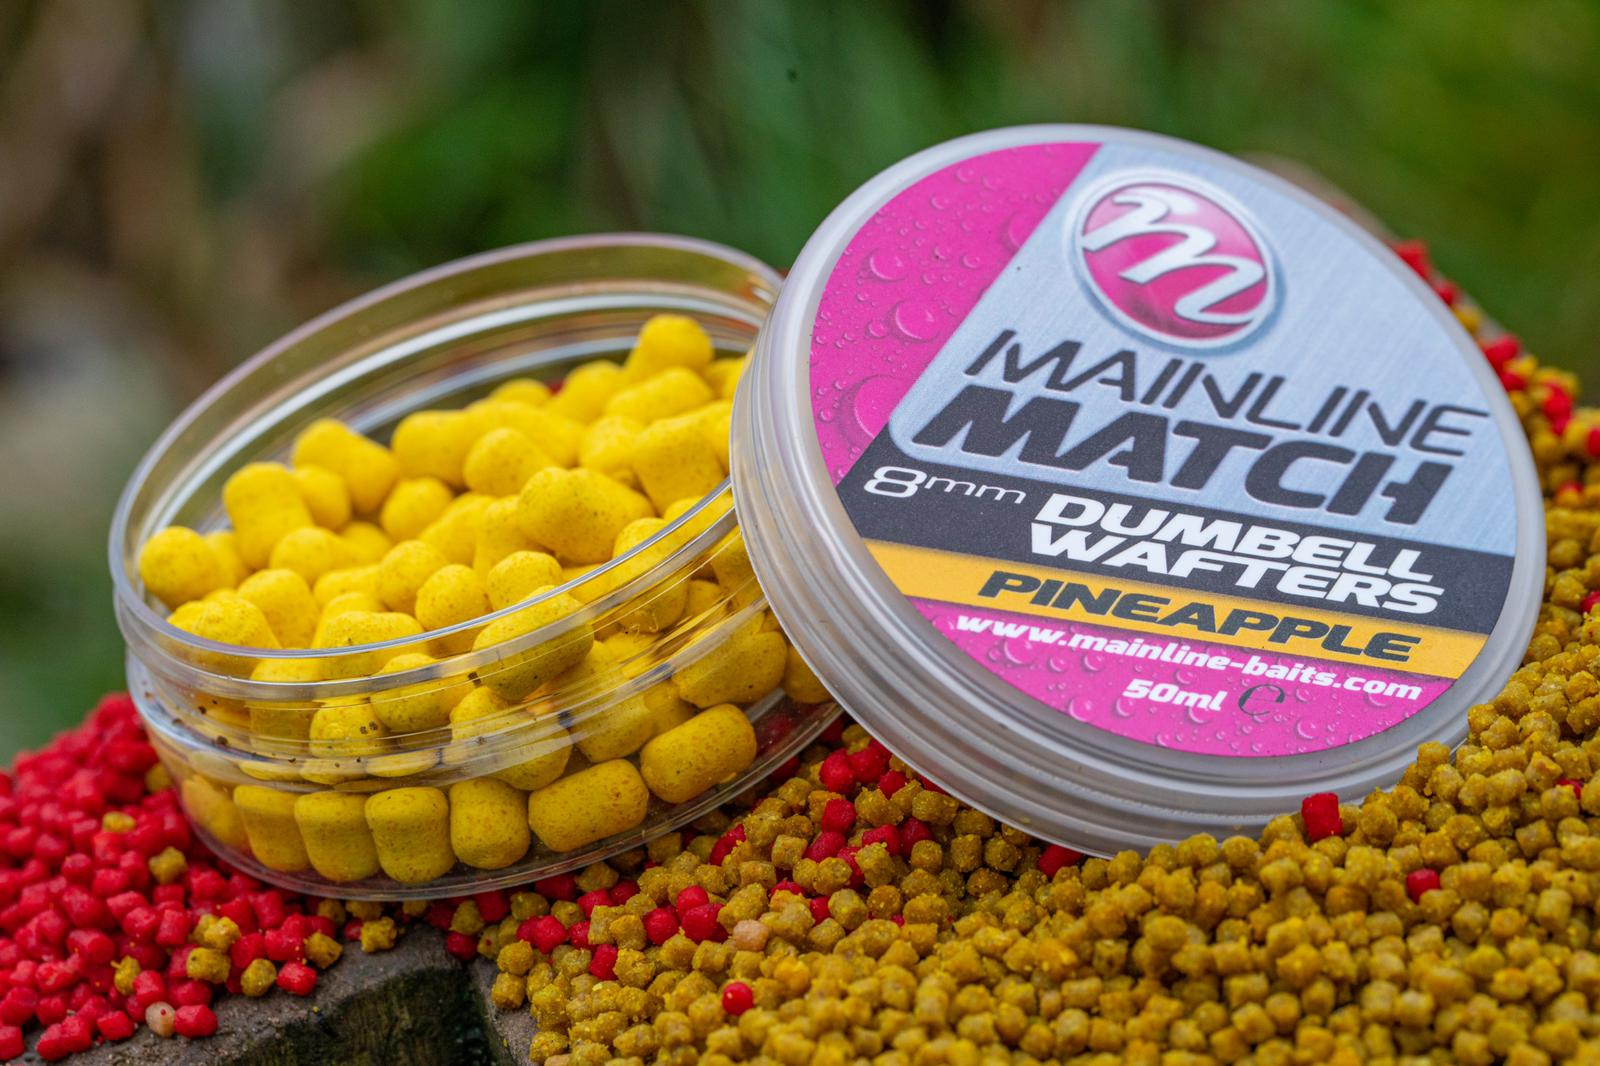 WAFTER MAINLINE MATCH DUMBELL YELLOW PINEAPPLE 8MM - A0.M.MM3108